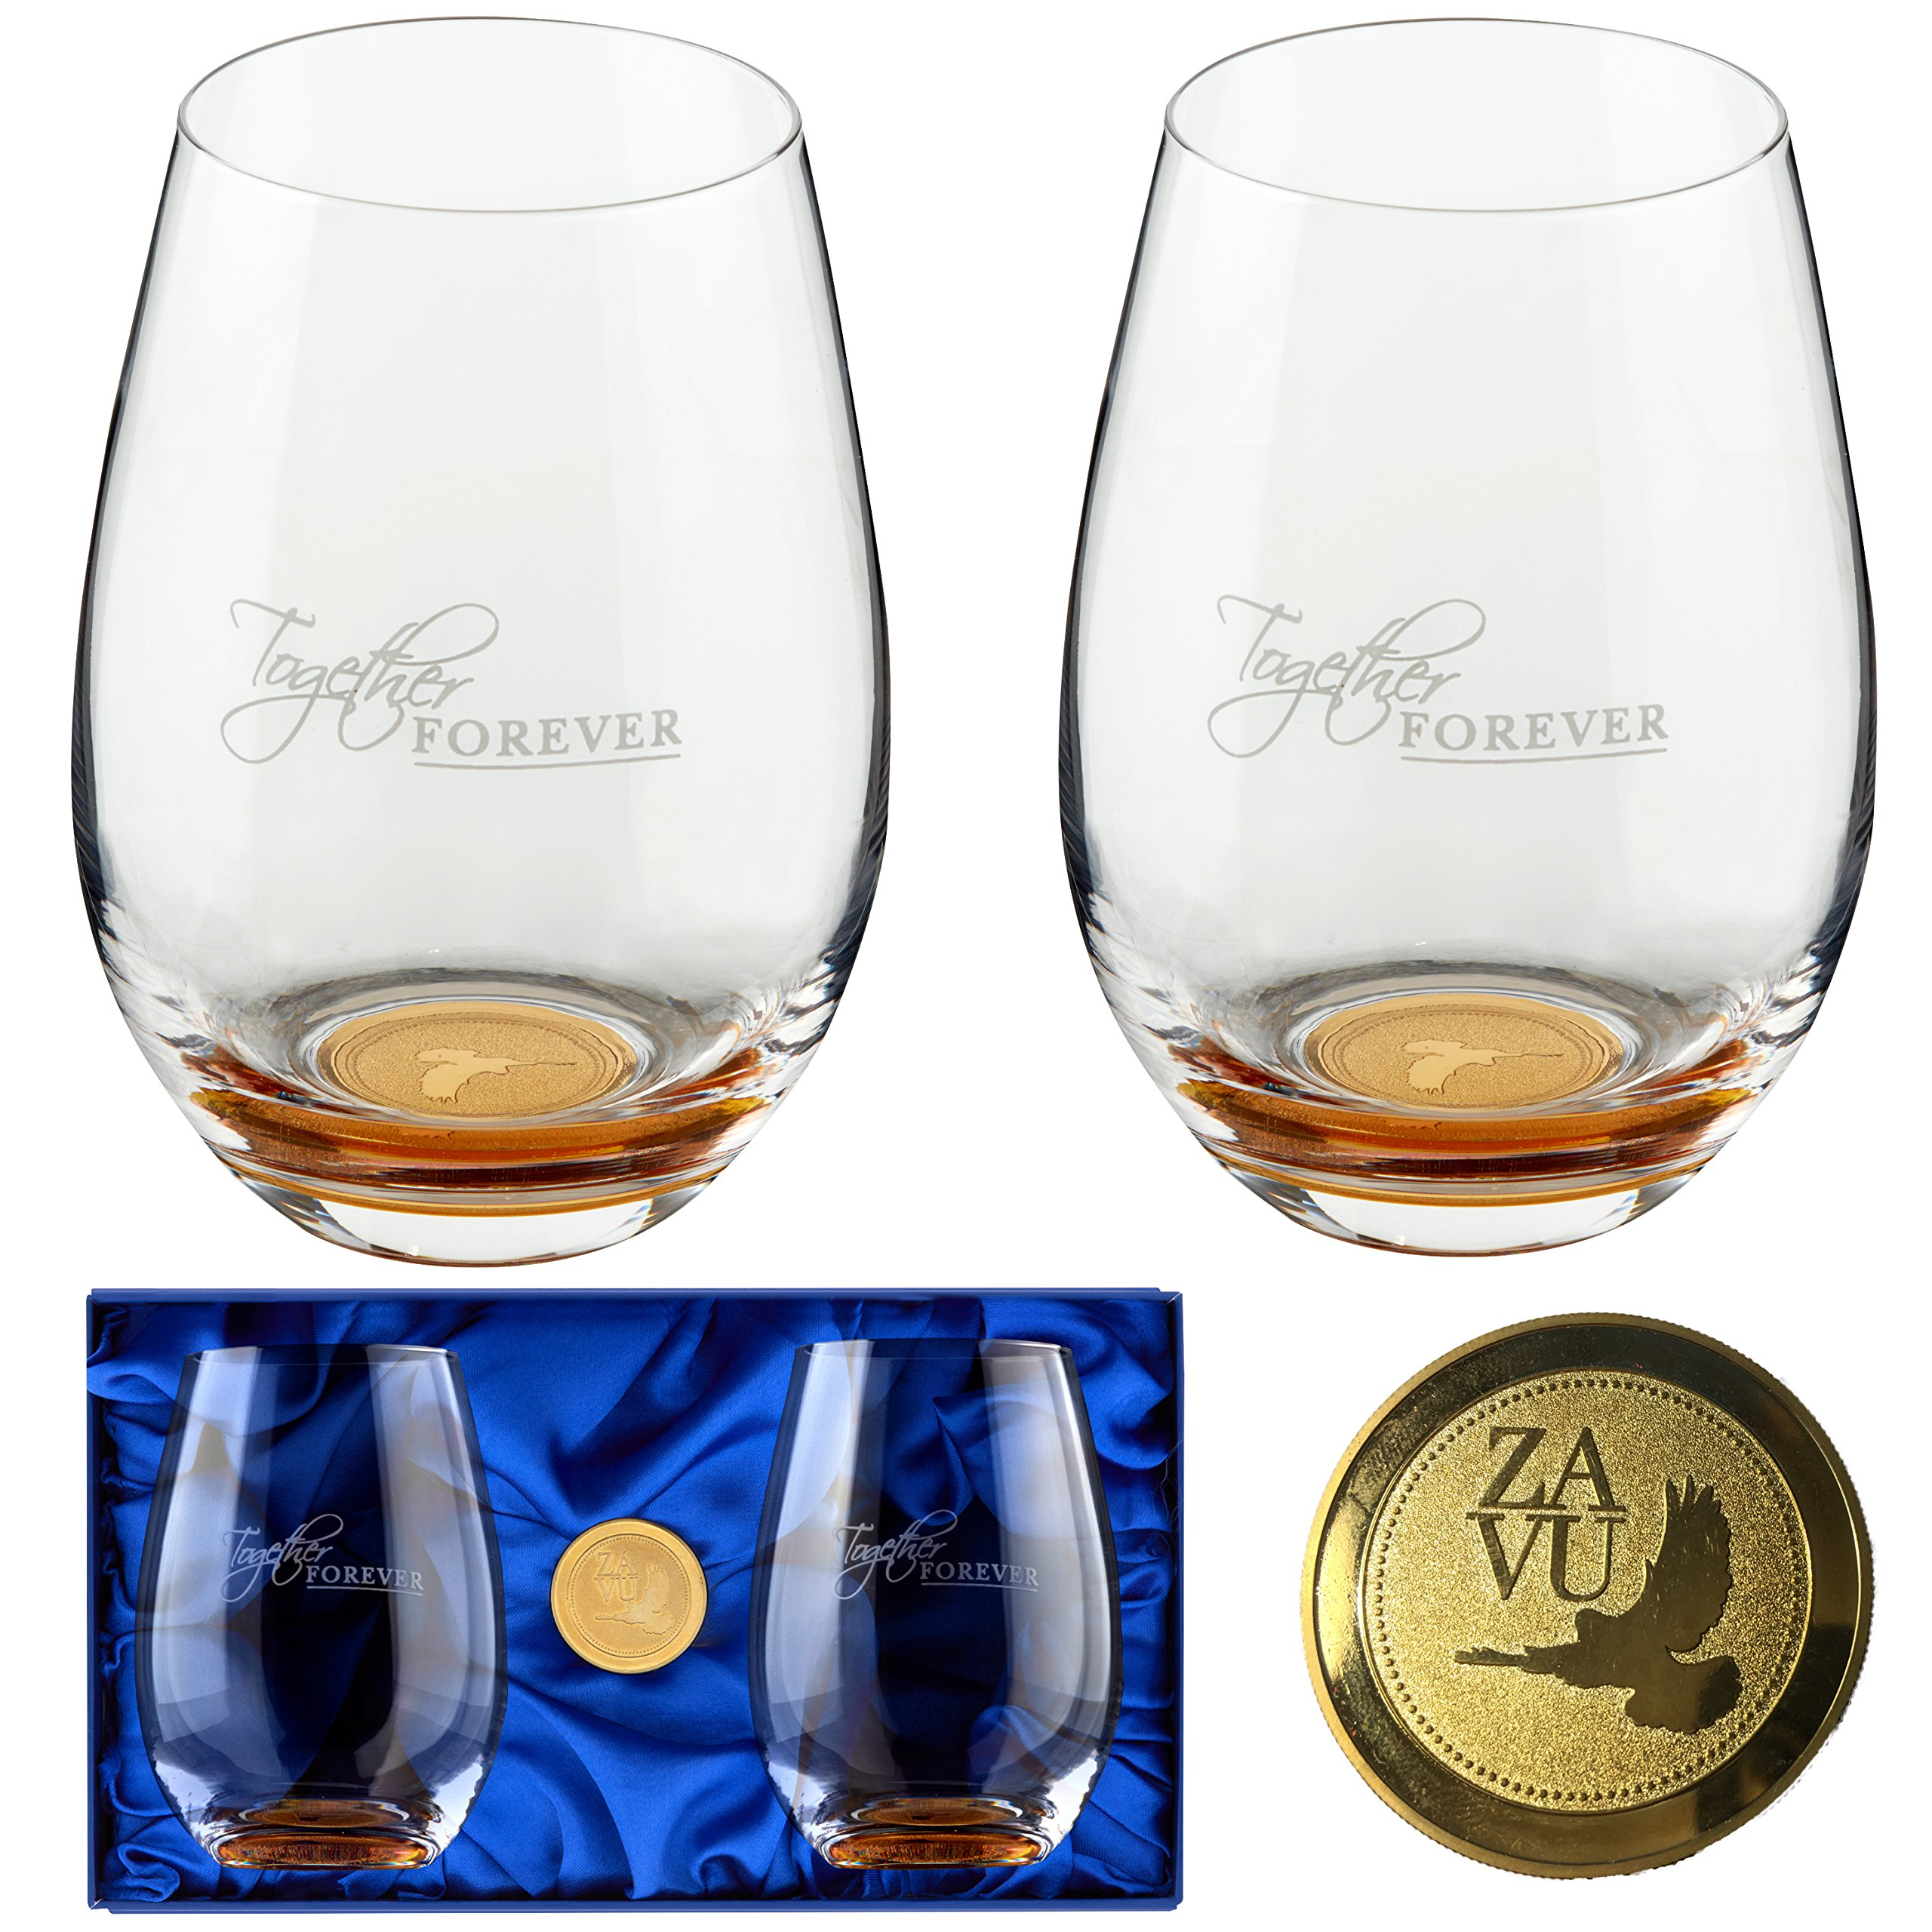 Anniversary Gift- Crystal Stemless Wine Glasses Set of 2. Precision Lead Free Hand Blown, Large 22oz, Embedded gold coin, Magnetic Gift Box, Anniversary Gift for Couple, Retirement Gift, Wedding